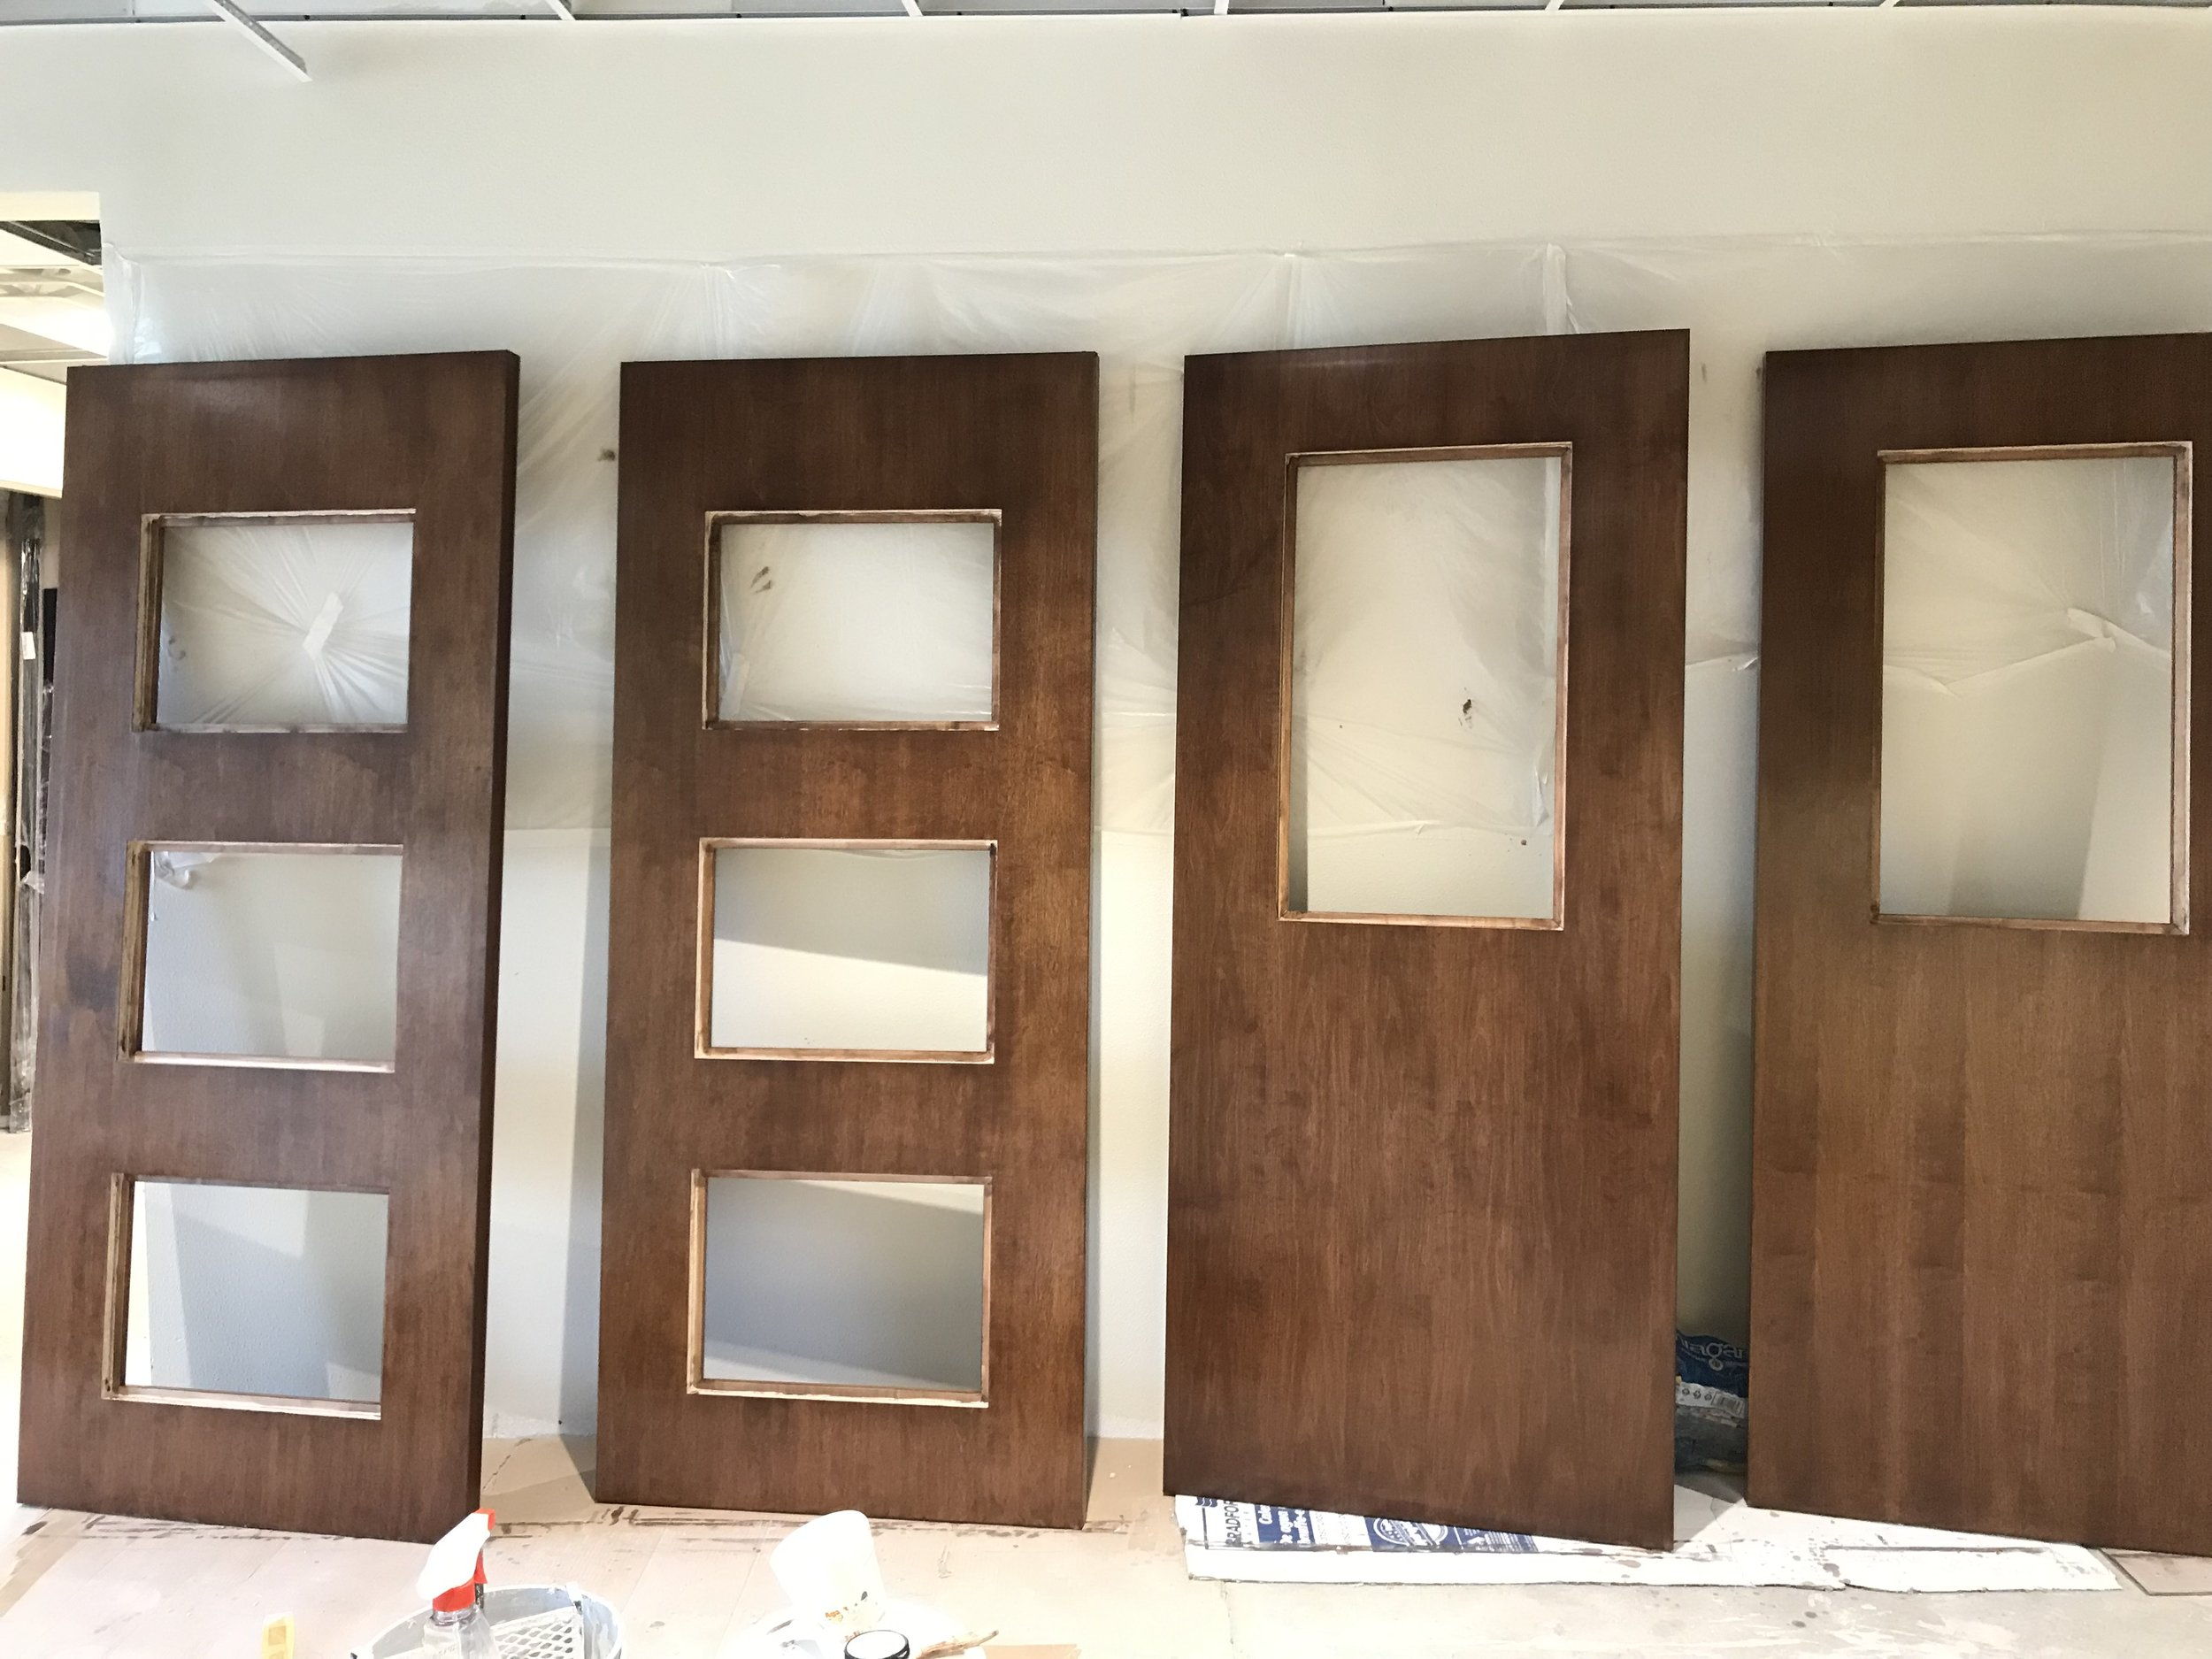 Interior doors for the sanctuary are stained. (I believe the doors with 3 glass pieces will be for the center aisle, and the ones with a single piece will be for the side aisles).